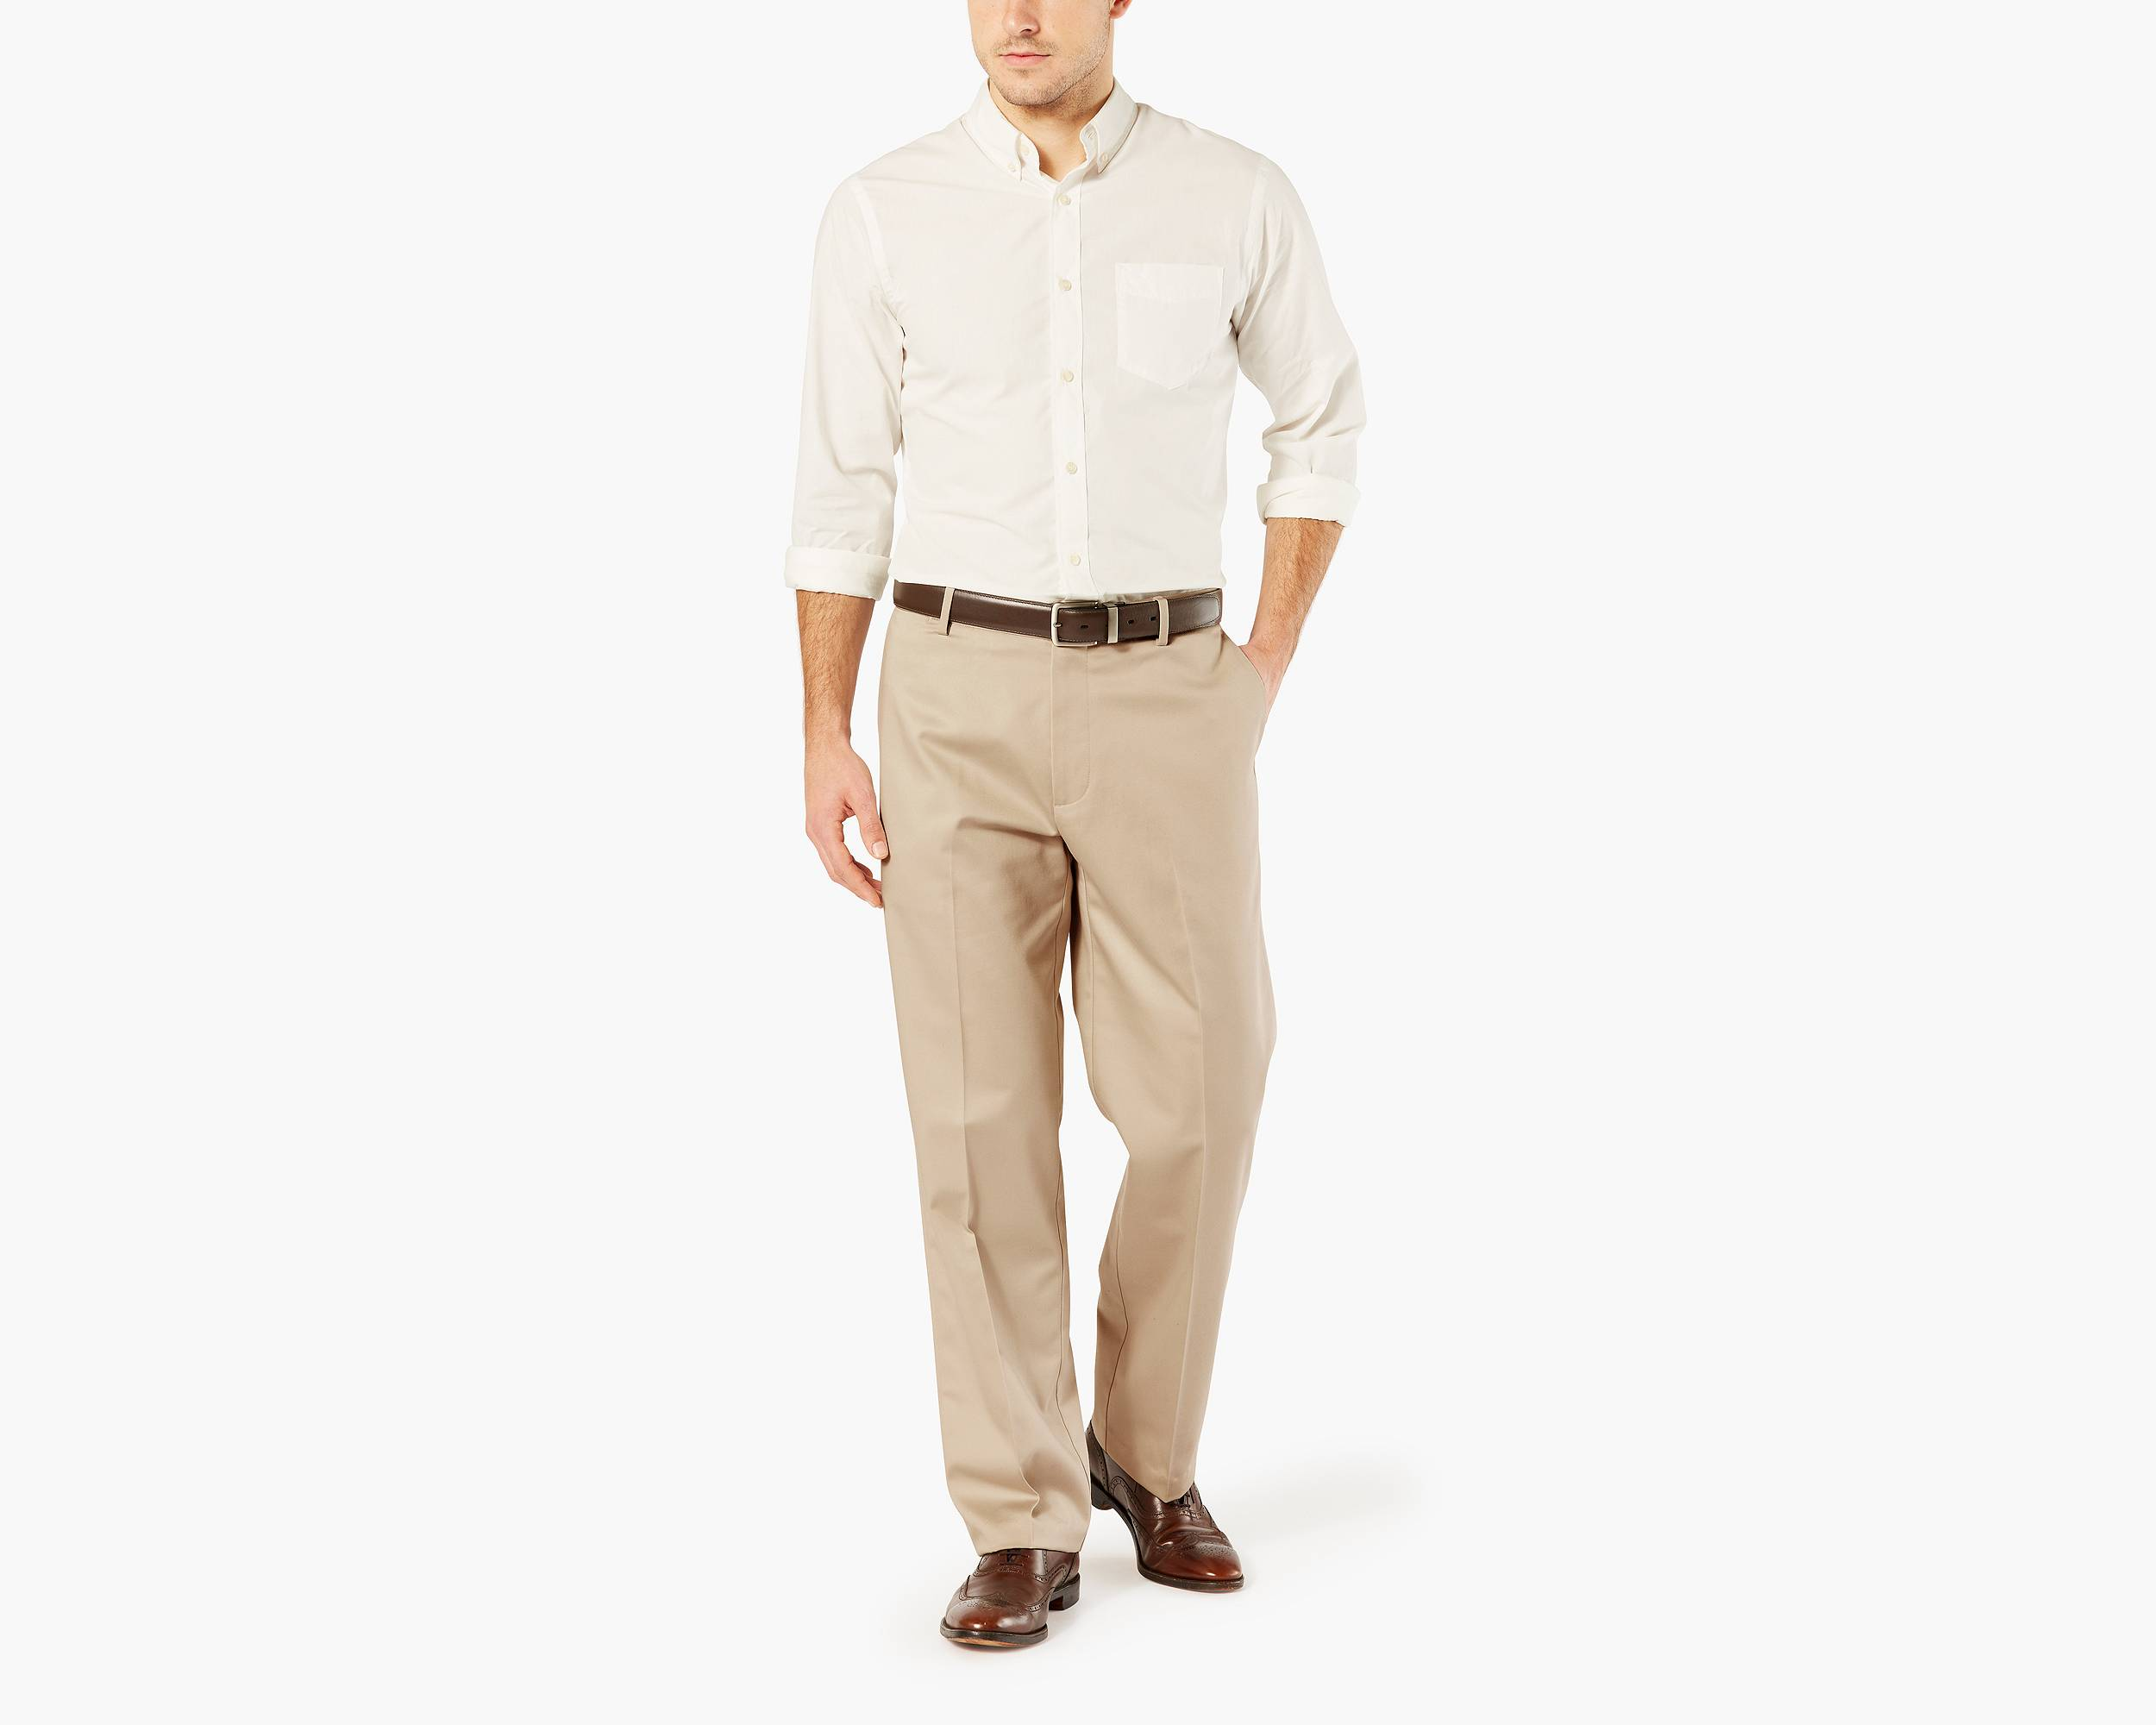 Premium Pants & Quality Dress Pants | Dockers